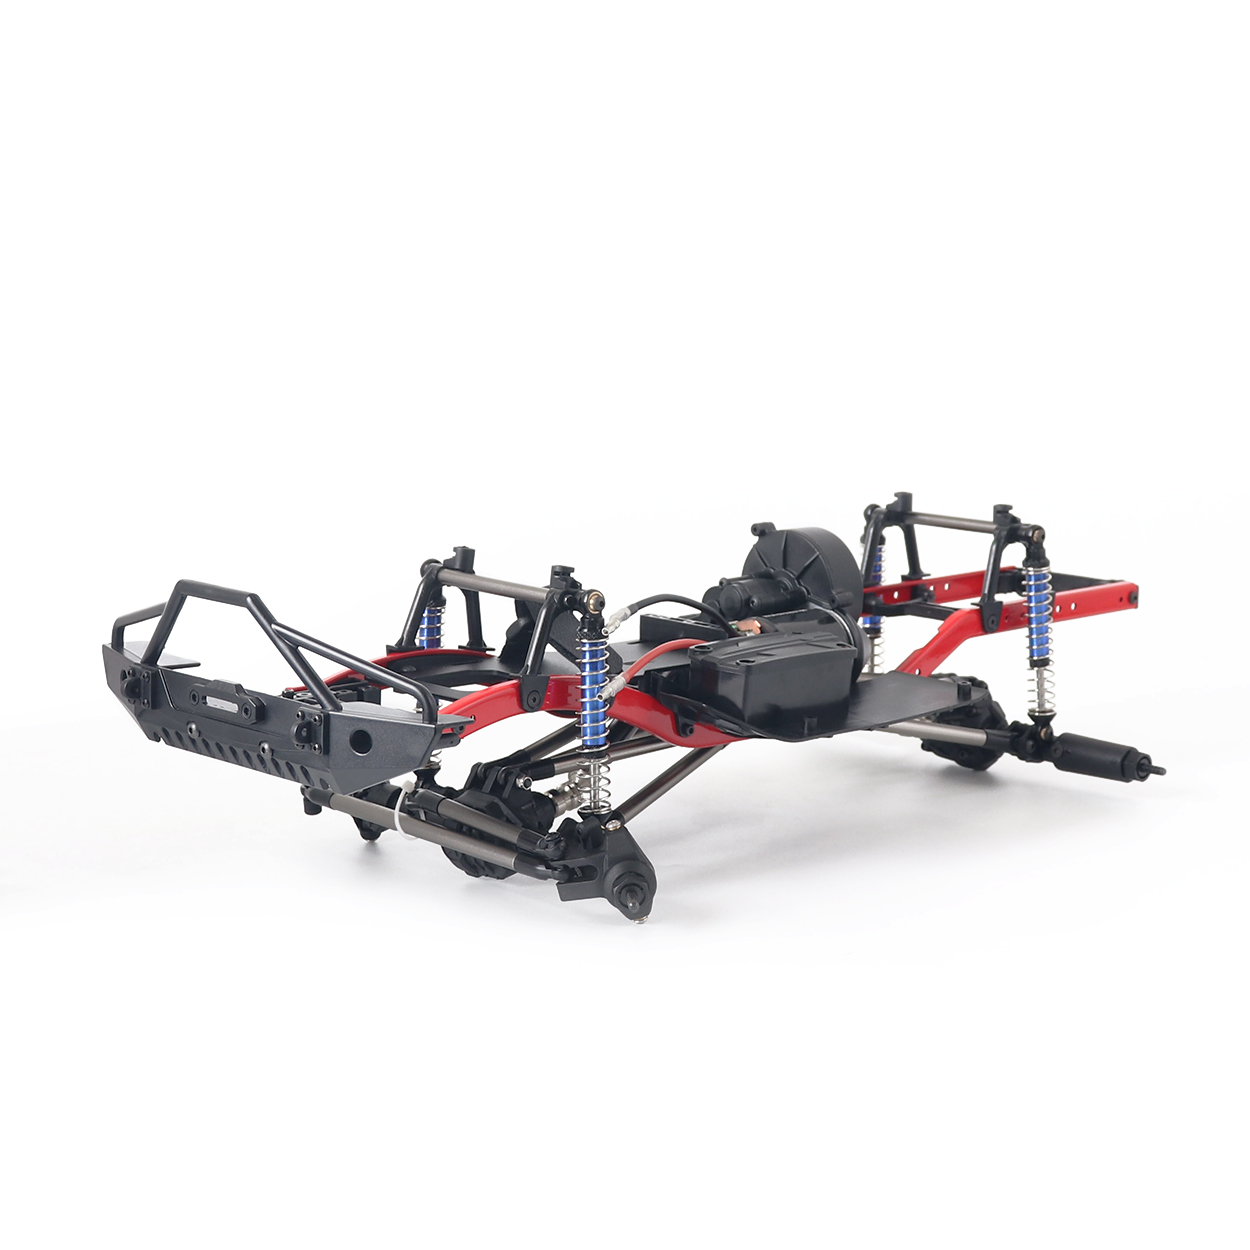 RC Car 275mm Wheelbase Assembled Frame Chassis with Wheels for 1/10 RC Crawler Car SCX10 D90 TF2 MST black